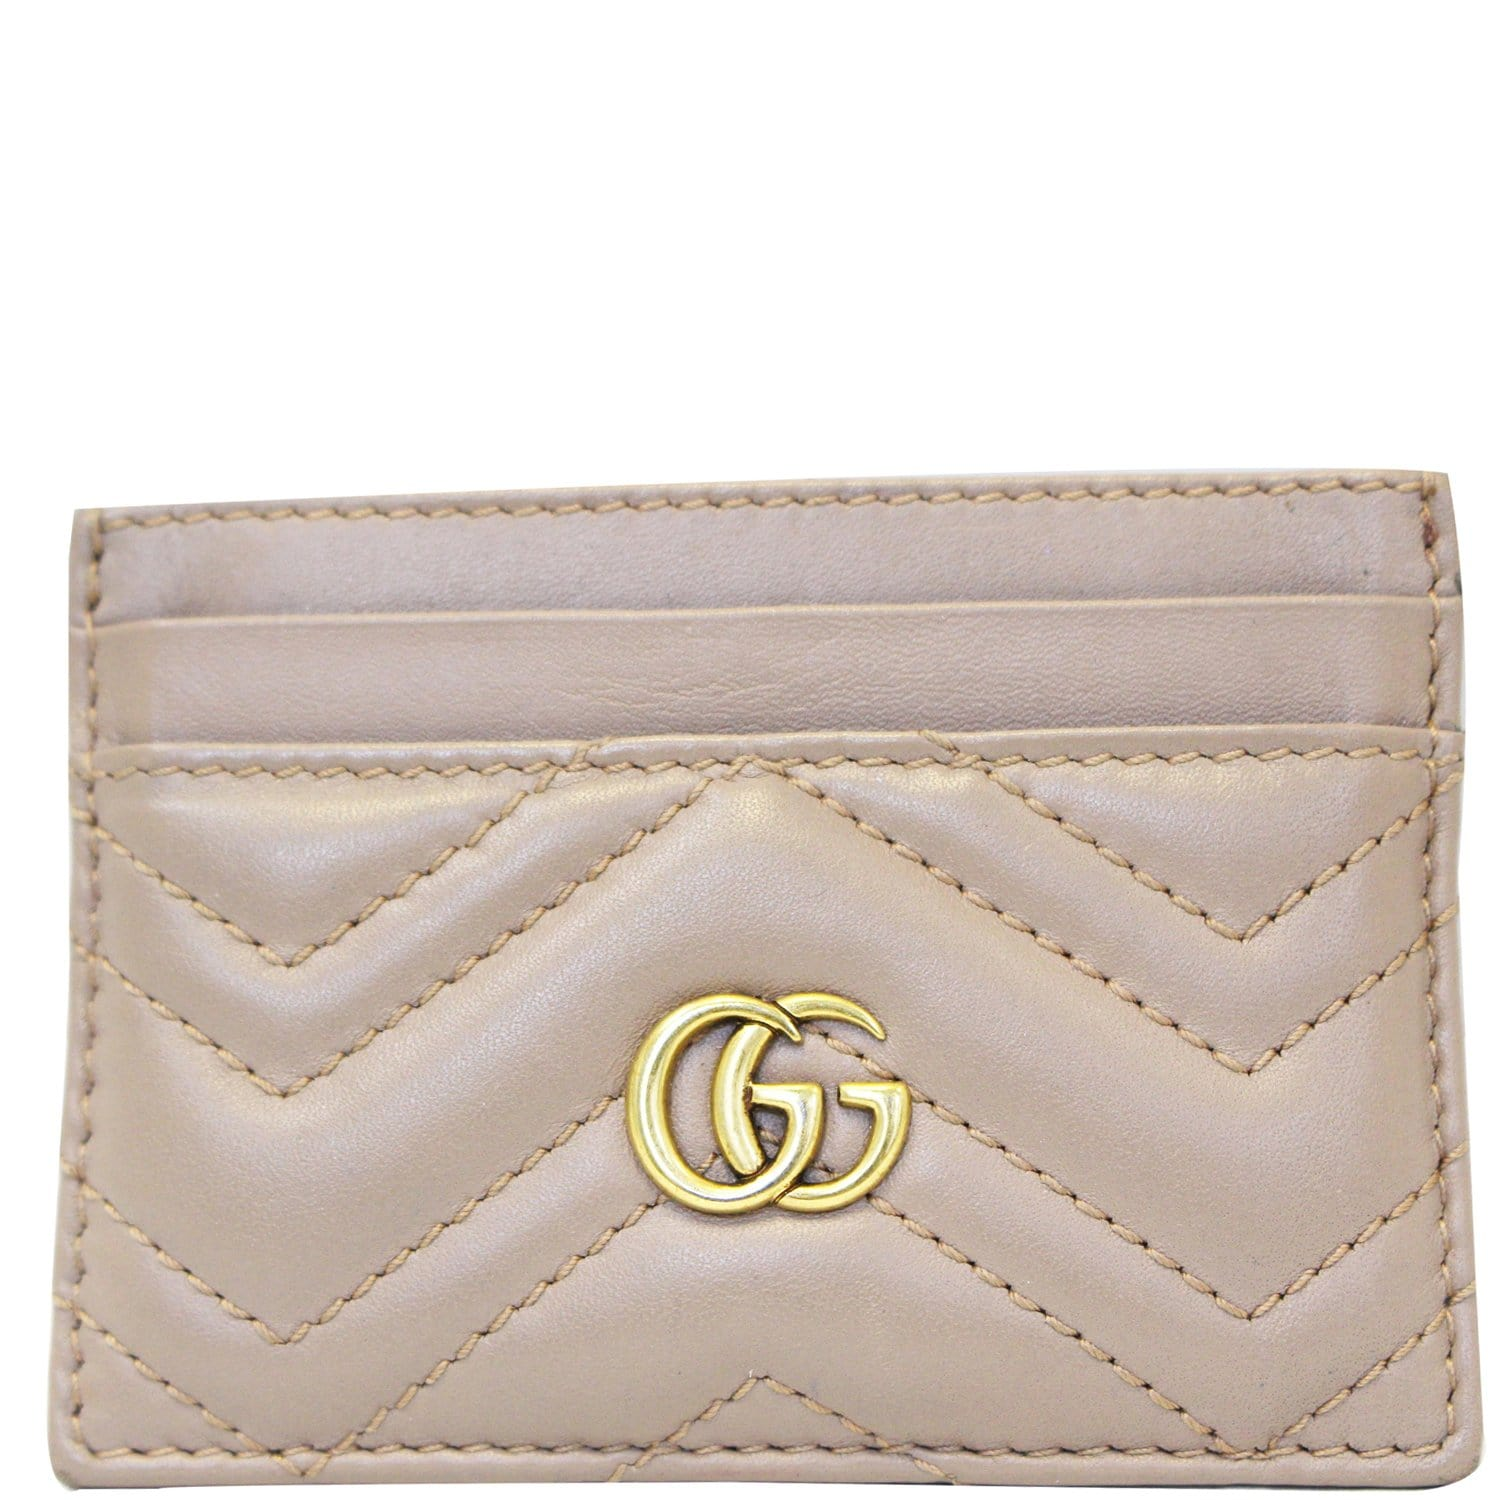 5db357f8f98873 GUCCI GG Marmont Leather Card Case Dusty Pink-US